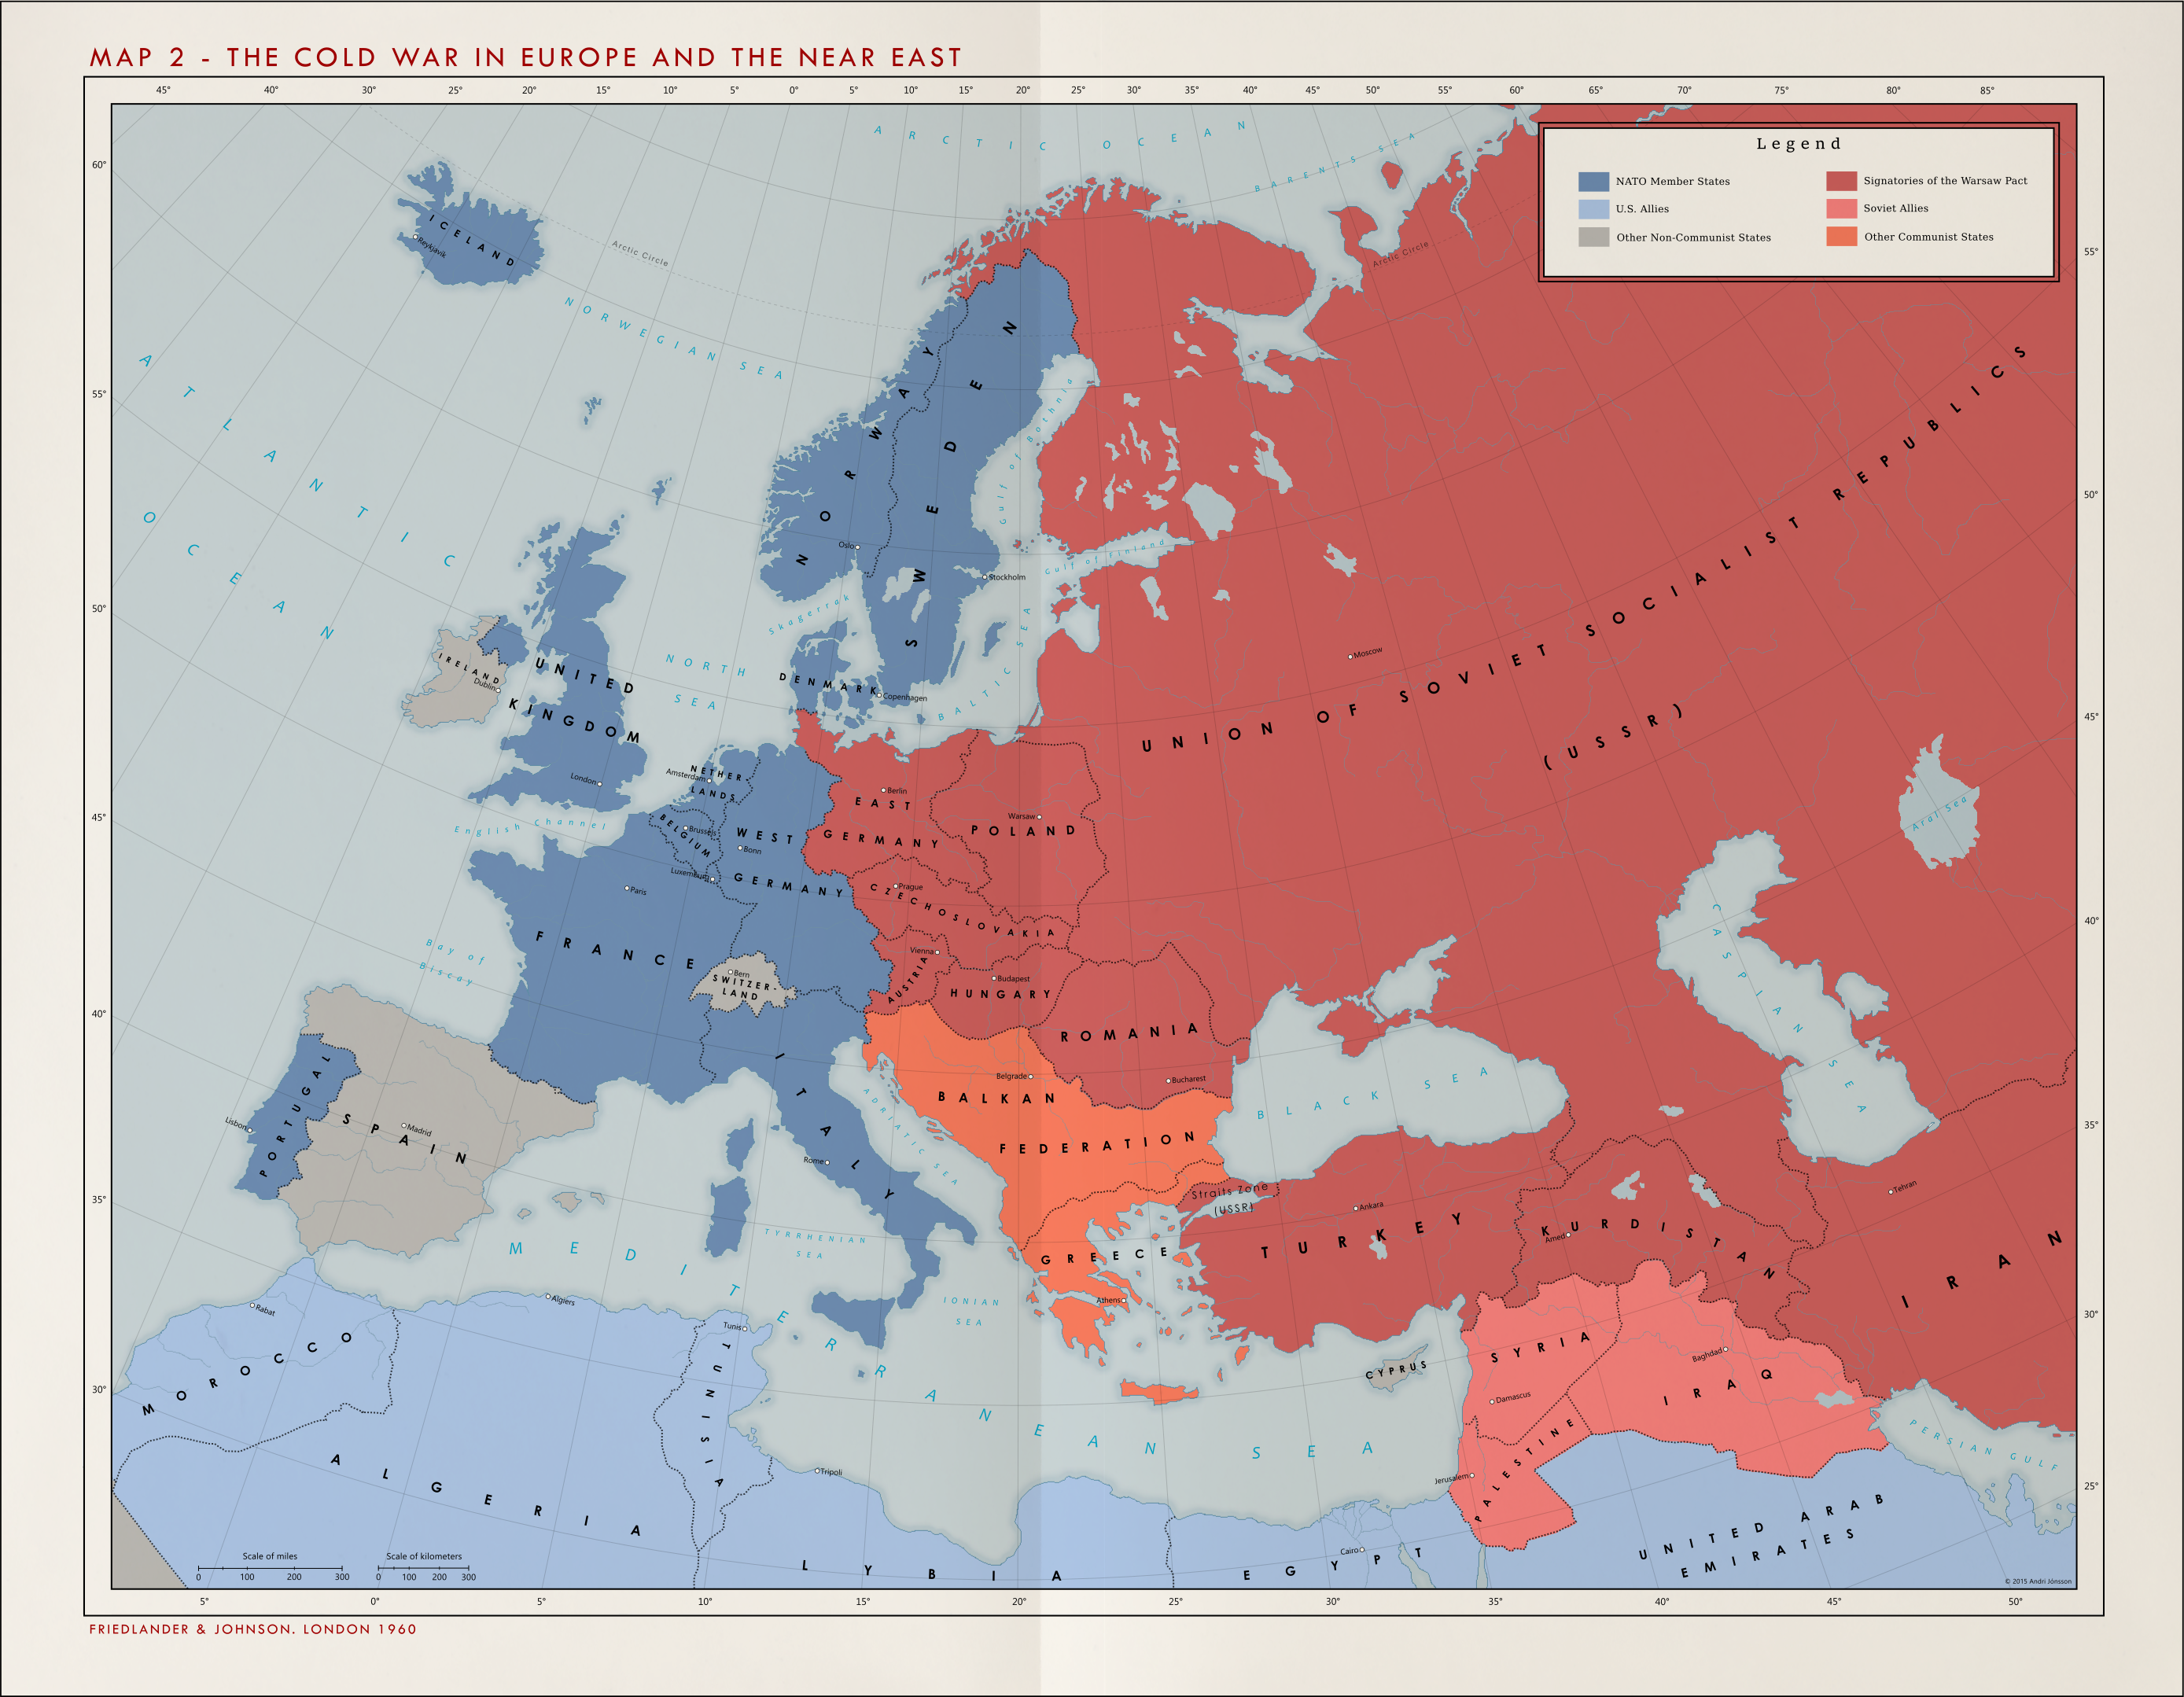 Alternate Cold War 1960 - Cold War in Europe | Alternative History ...